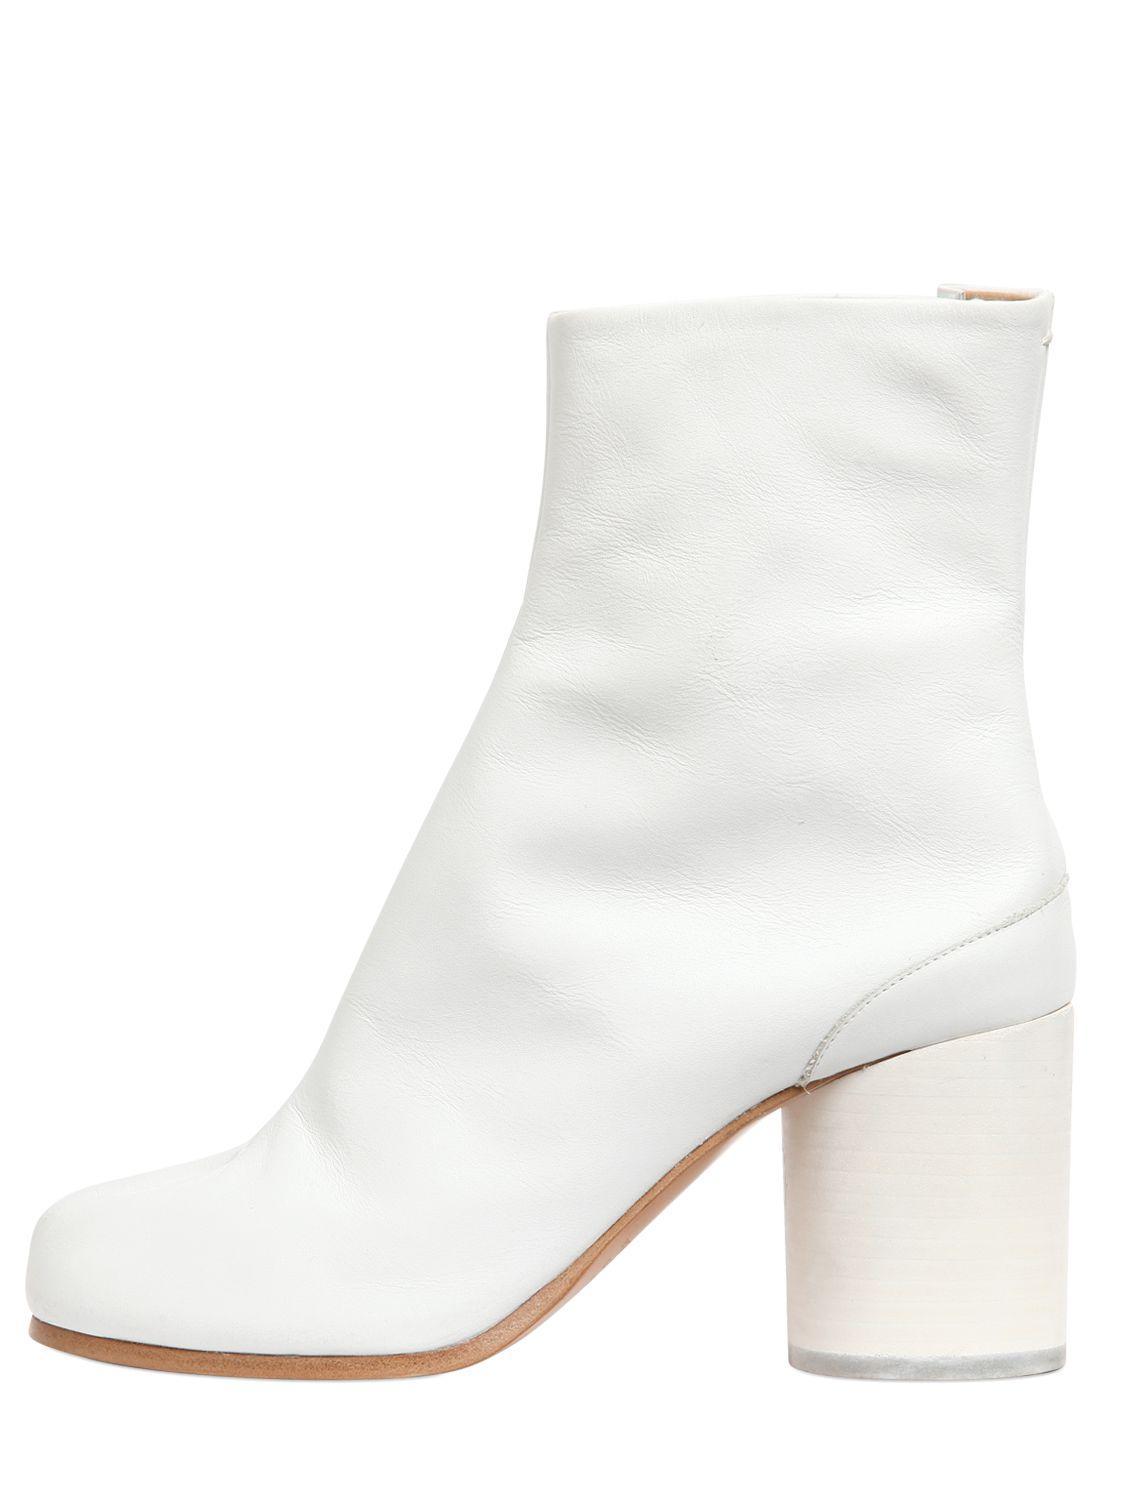 maison margiela 80mm tabi leather boots in white lyst